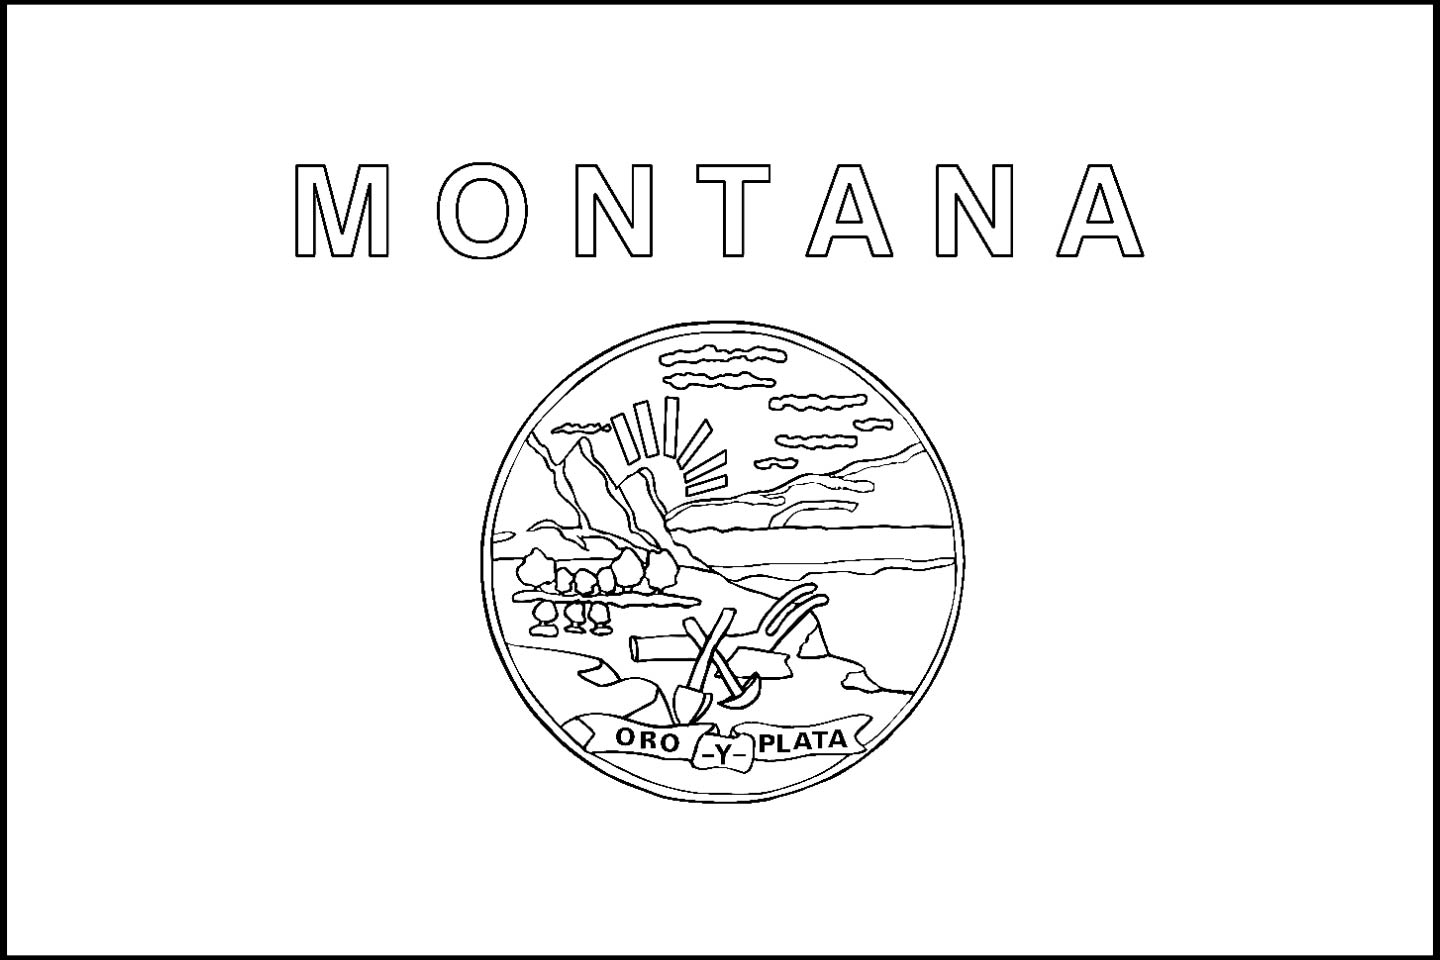 montana state coloring pages - montana state flag